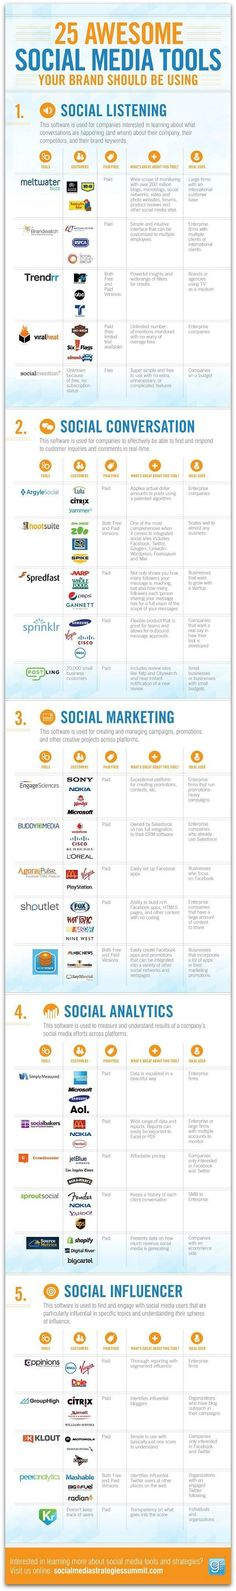 Infographic: The ultimate guide to social media tools | Articles | Main #publicrelationstools